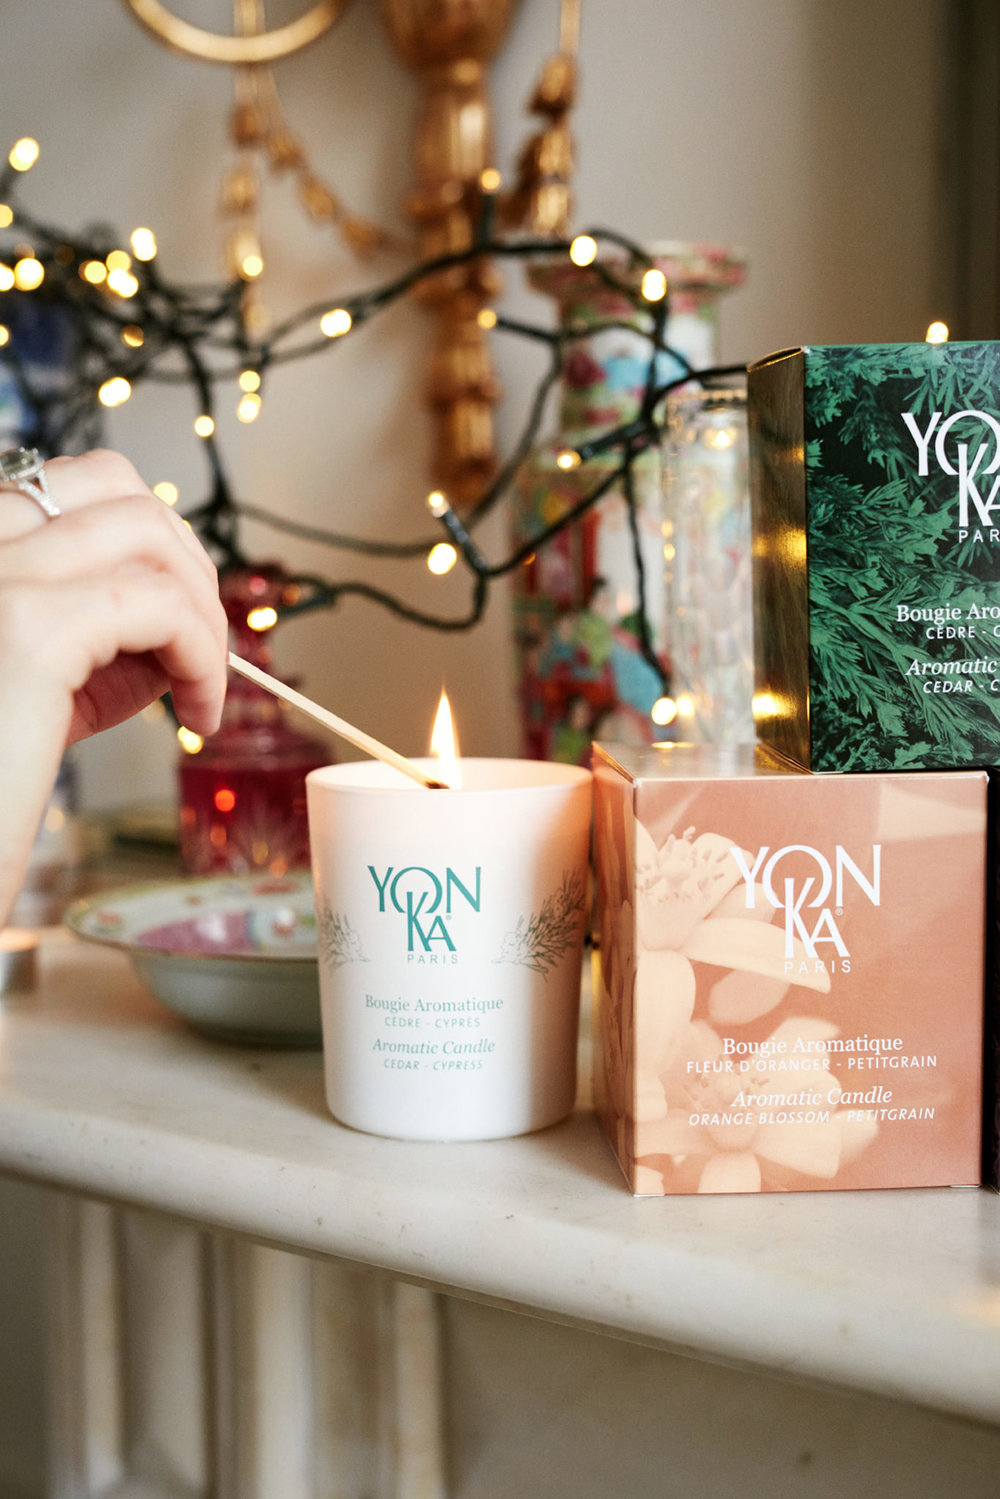 Yonka Christmas Gift Holly White natural Christmas candles